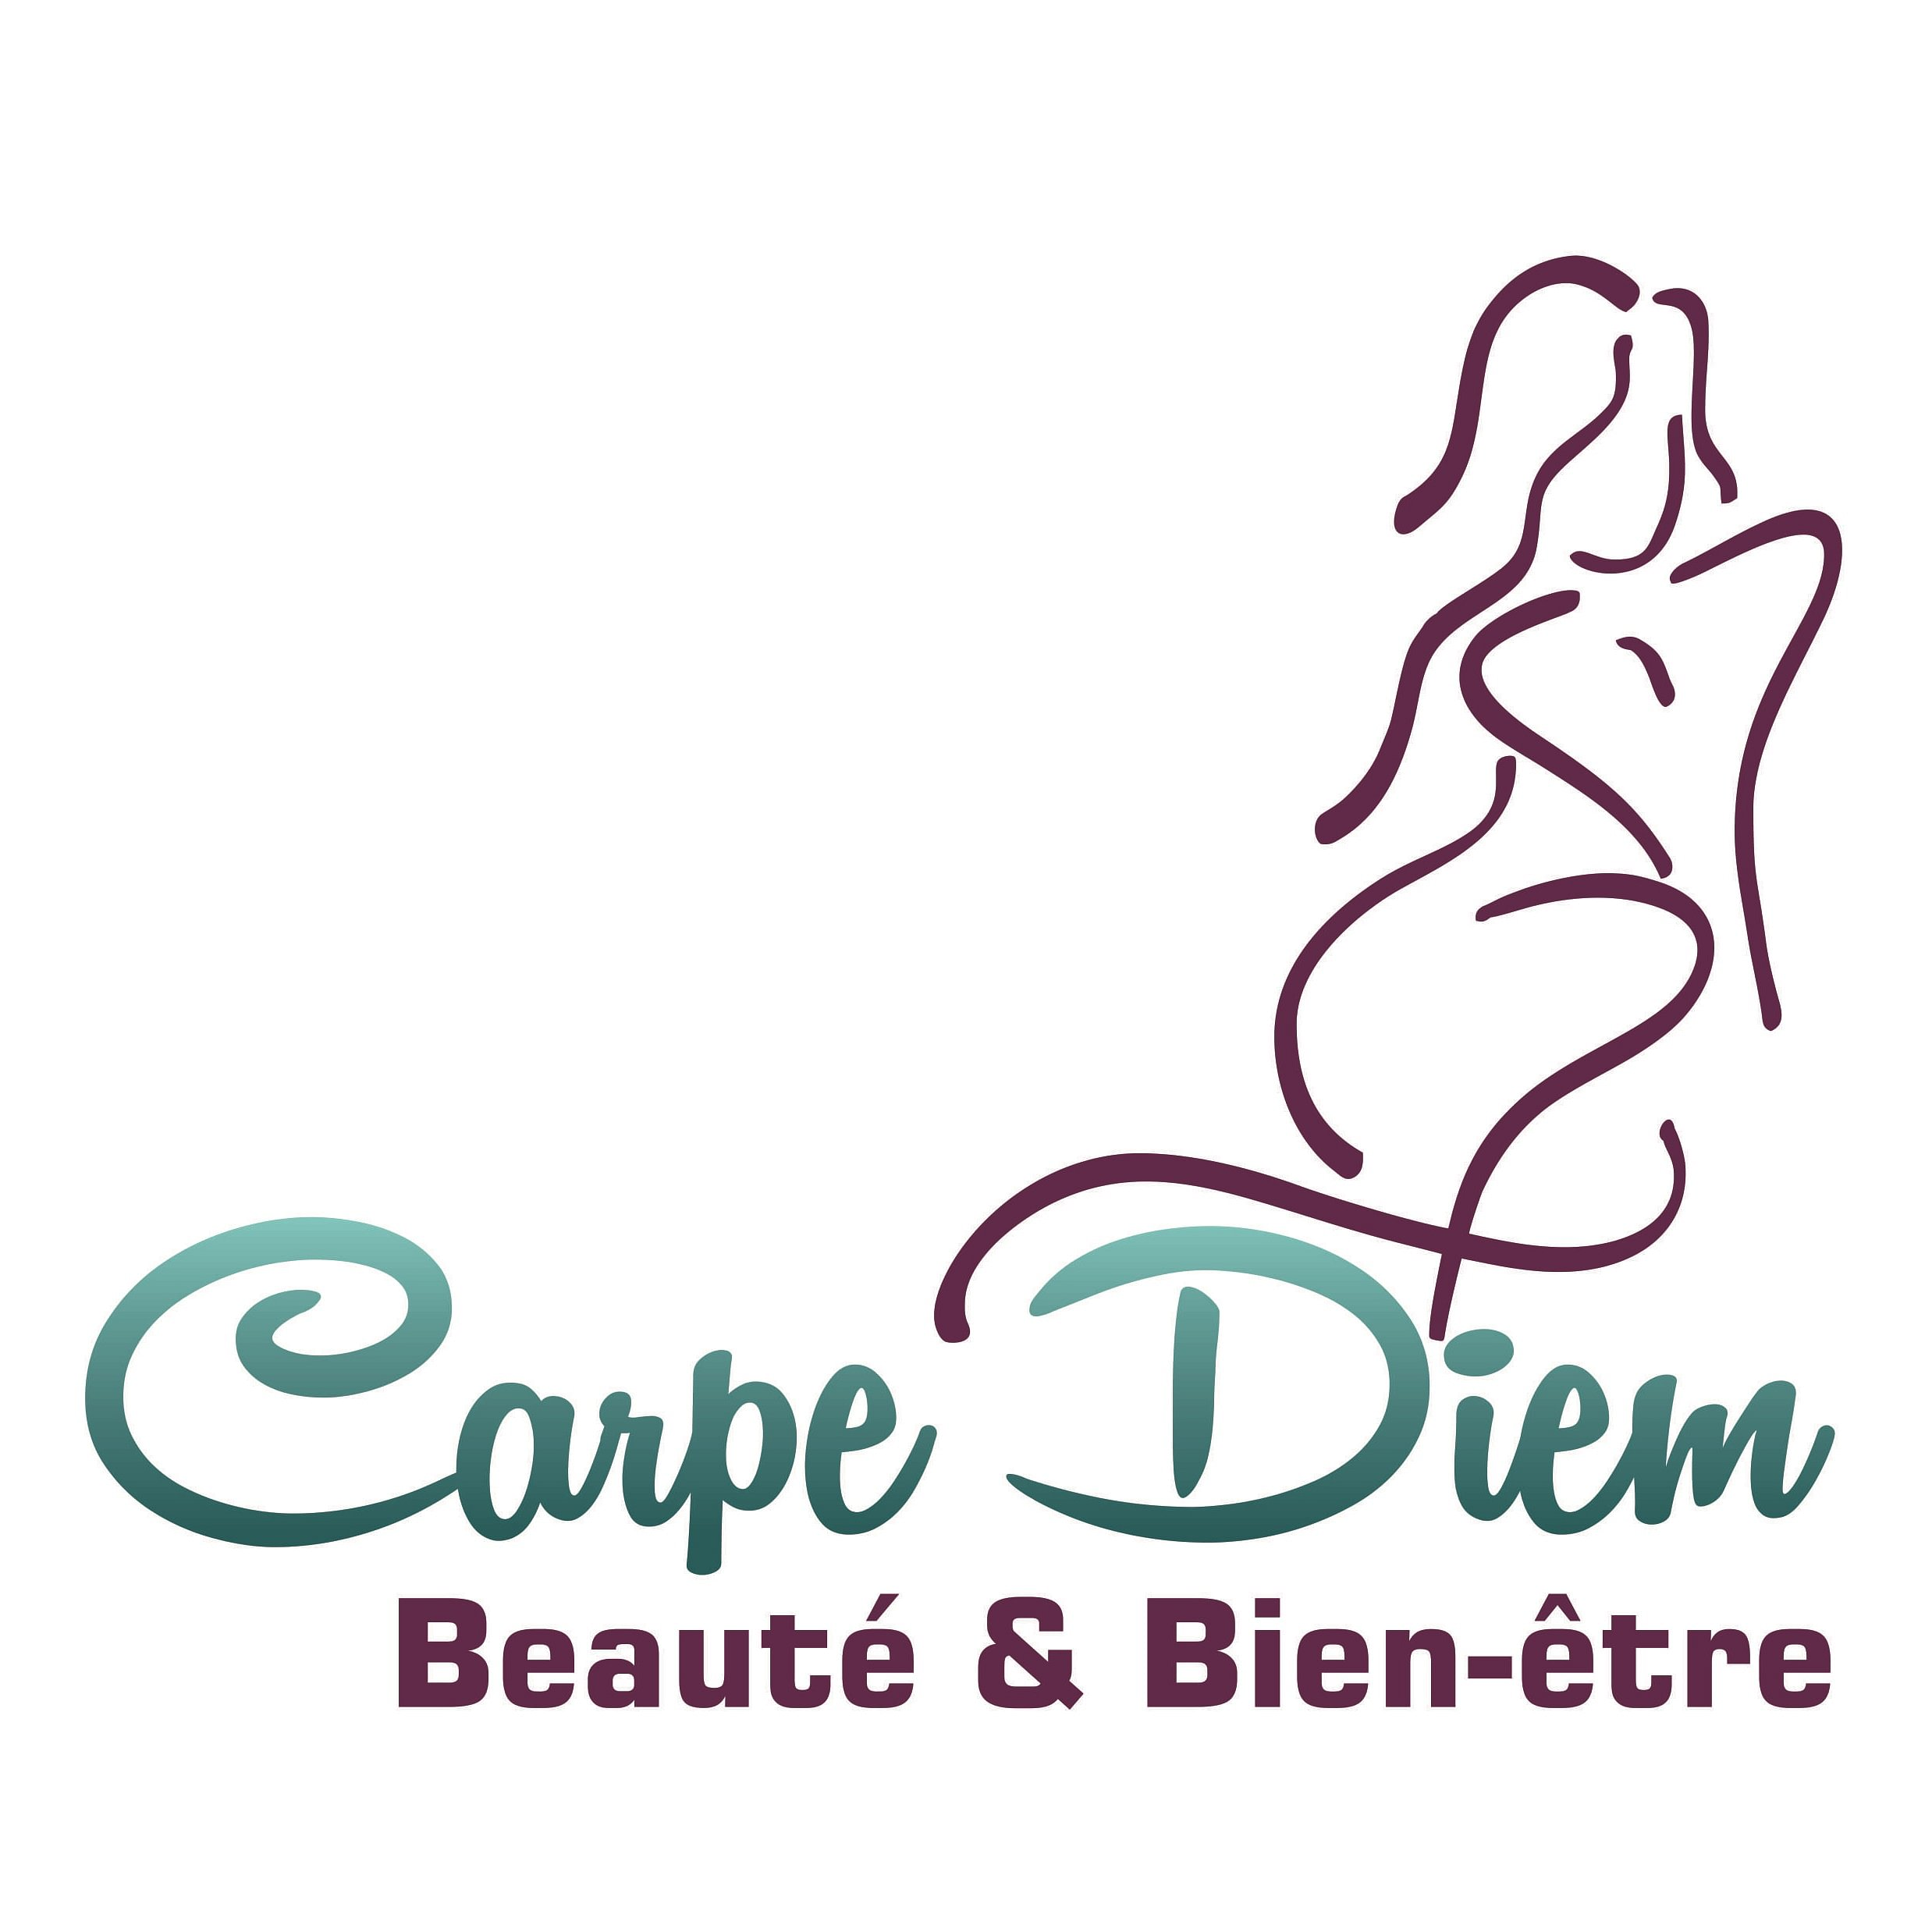 Institut Carpe Diem